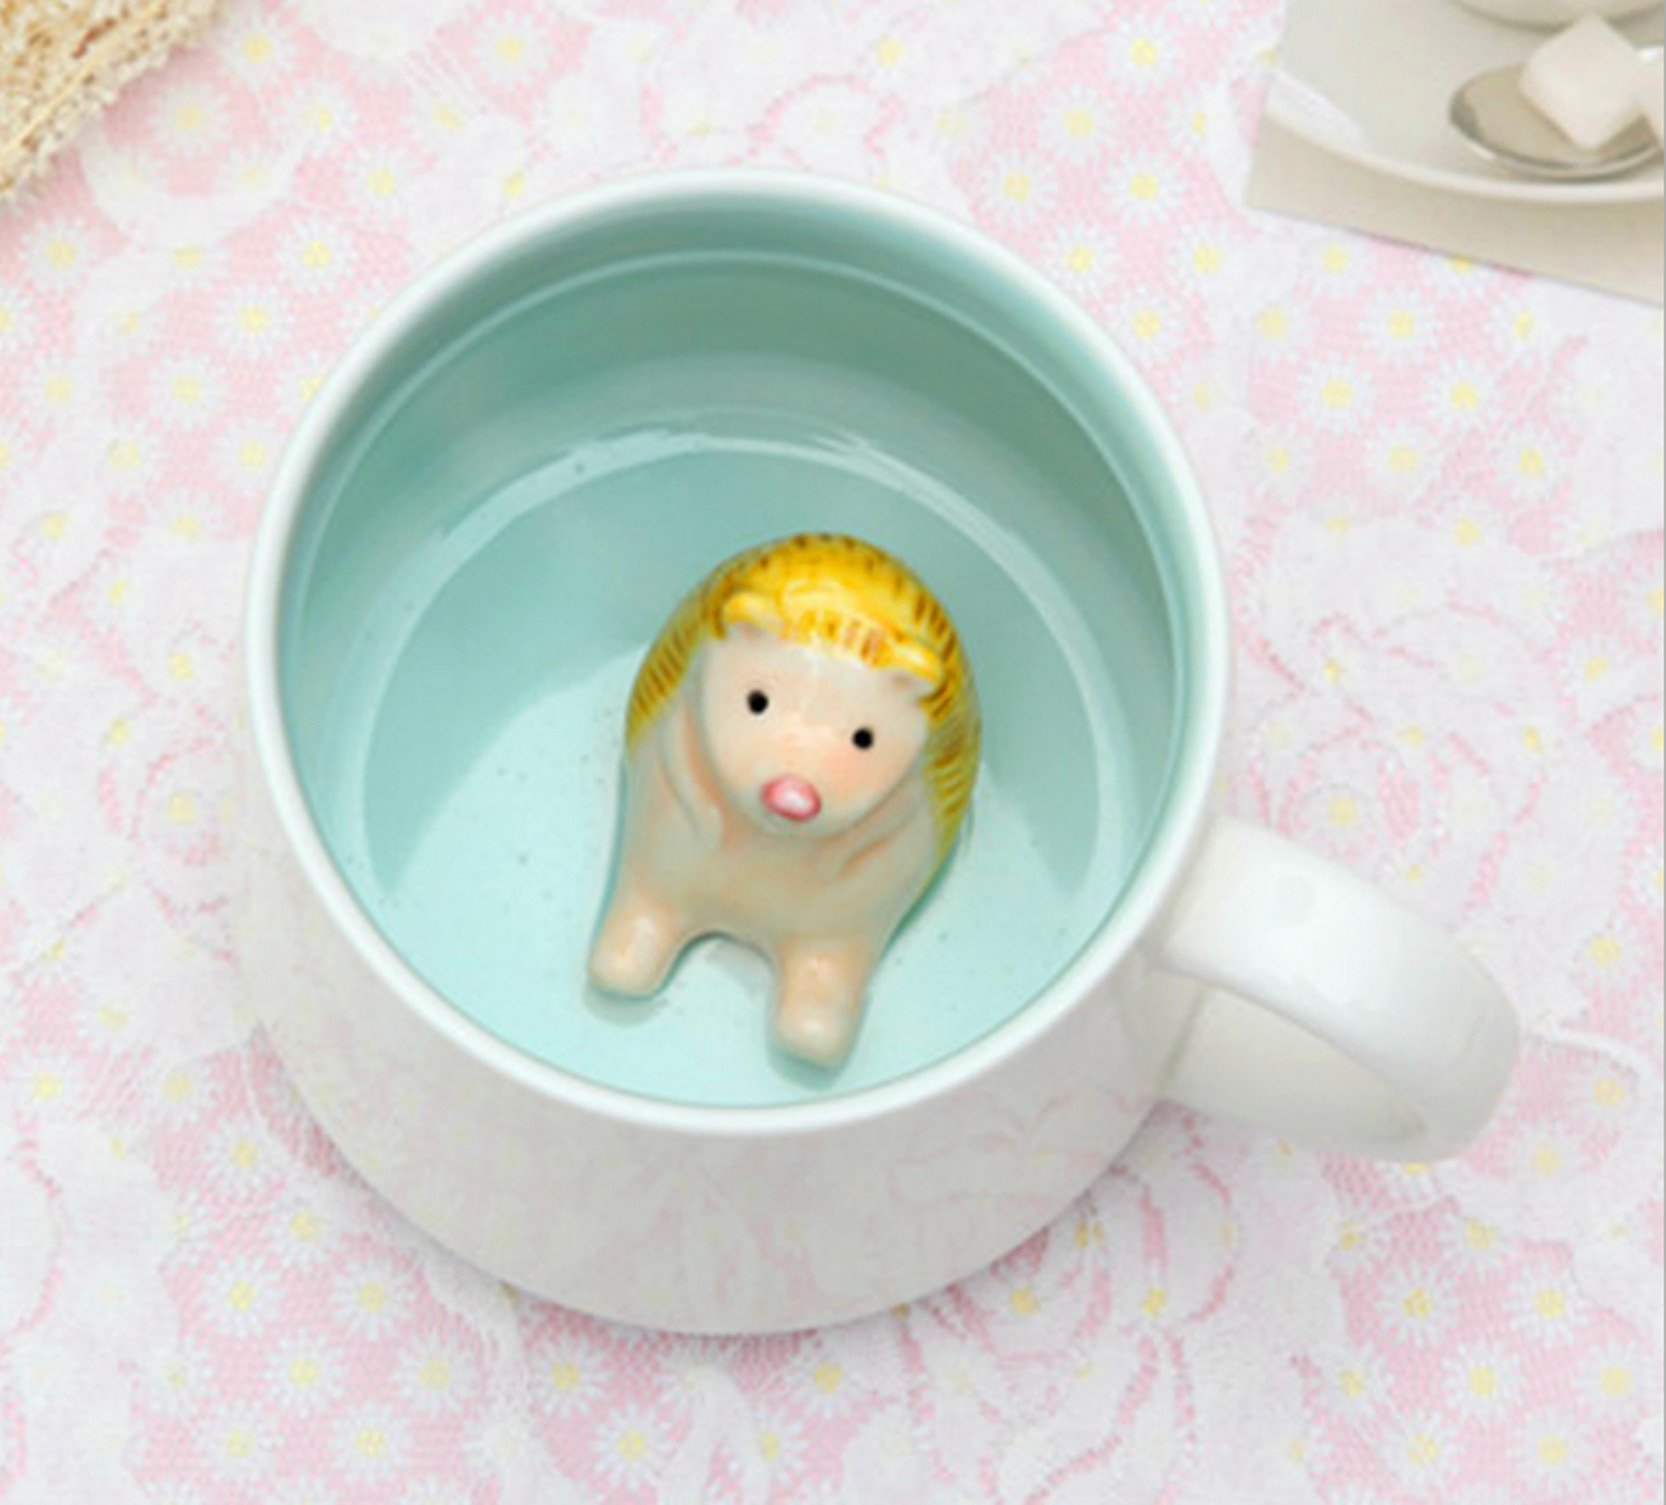 Hedgehog Inside Funny 3D Coffee Mug - 13.5 OZ Large Ceramic Tea Cup Birthday Gifts For Women Or Men, Brother Or Sister - Gag Gift For Coworker